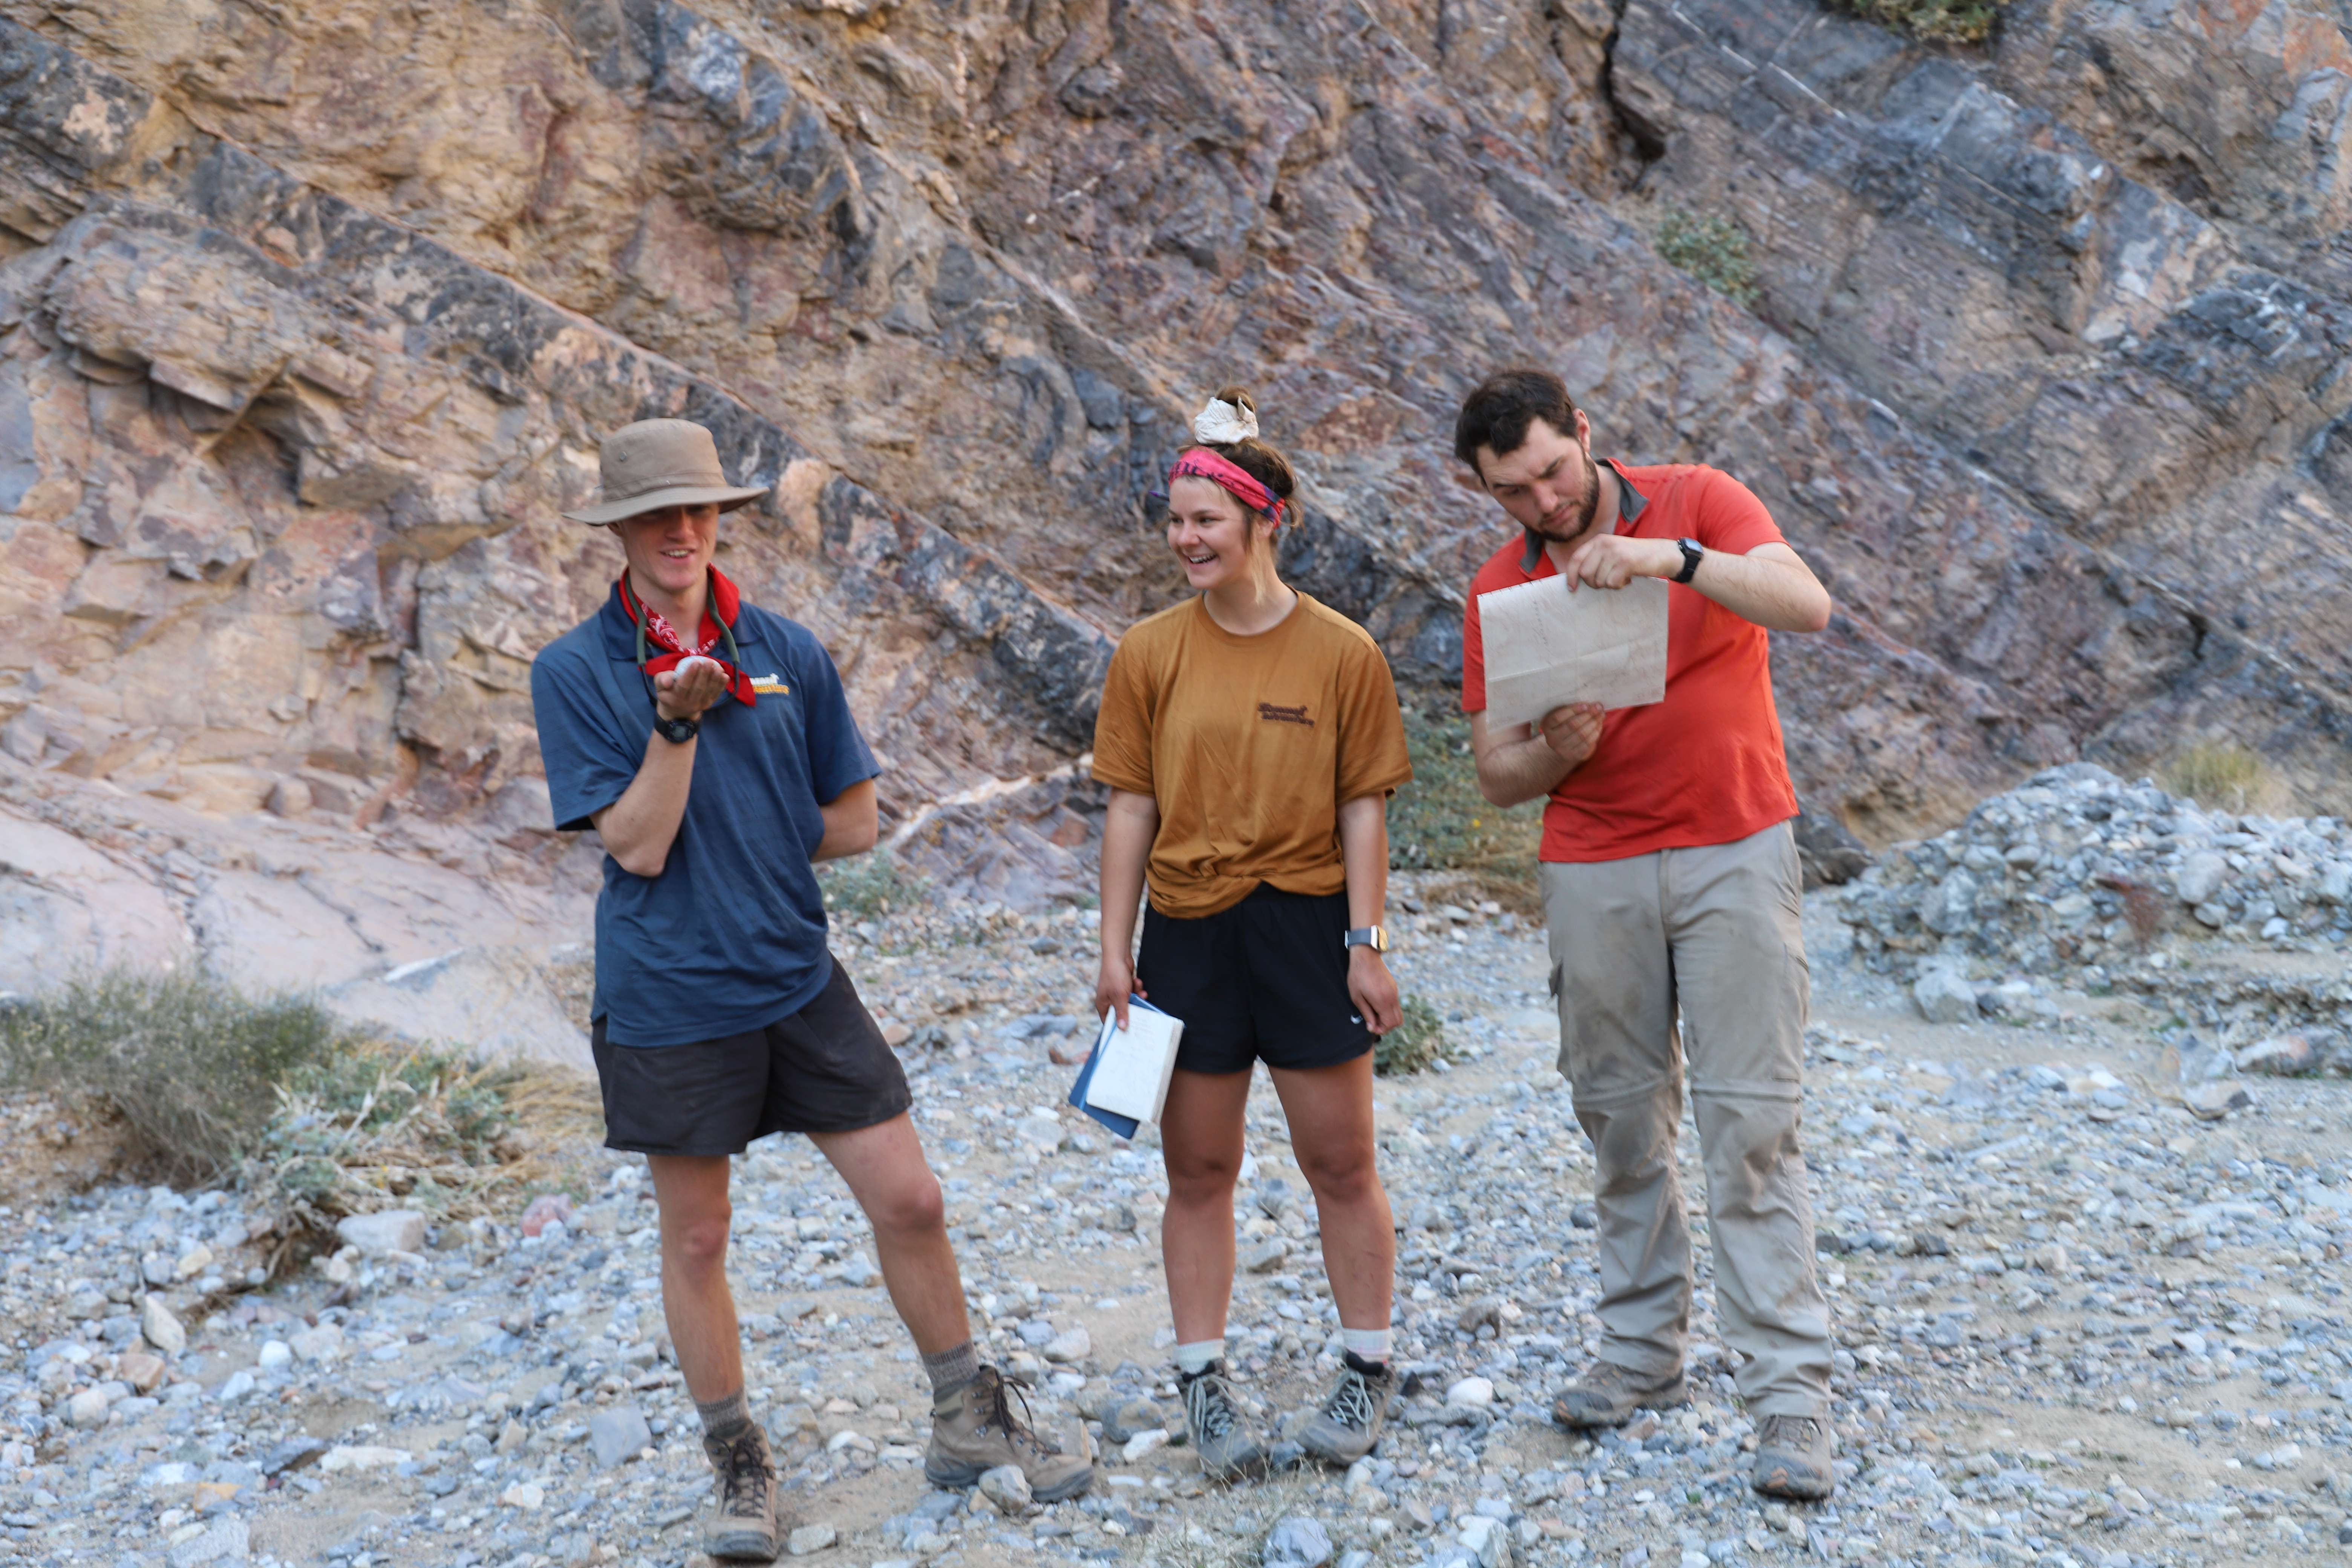 Christian outdoor adventure study abroad students in death valley